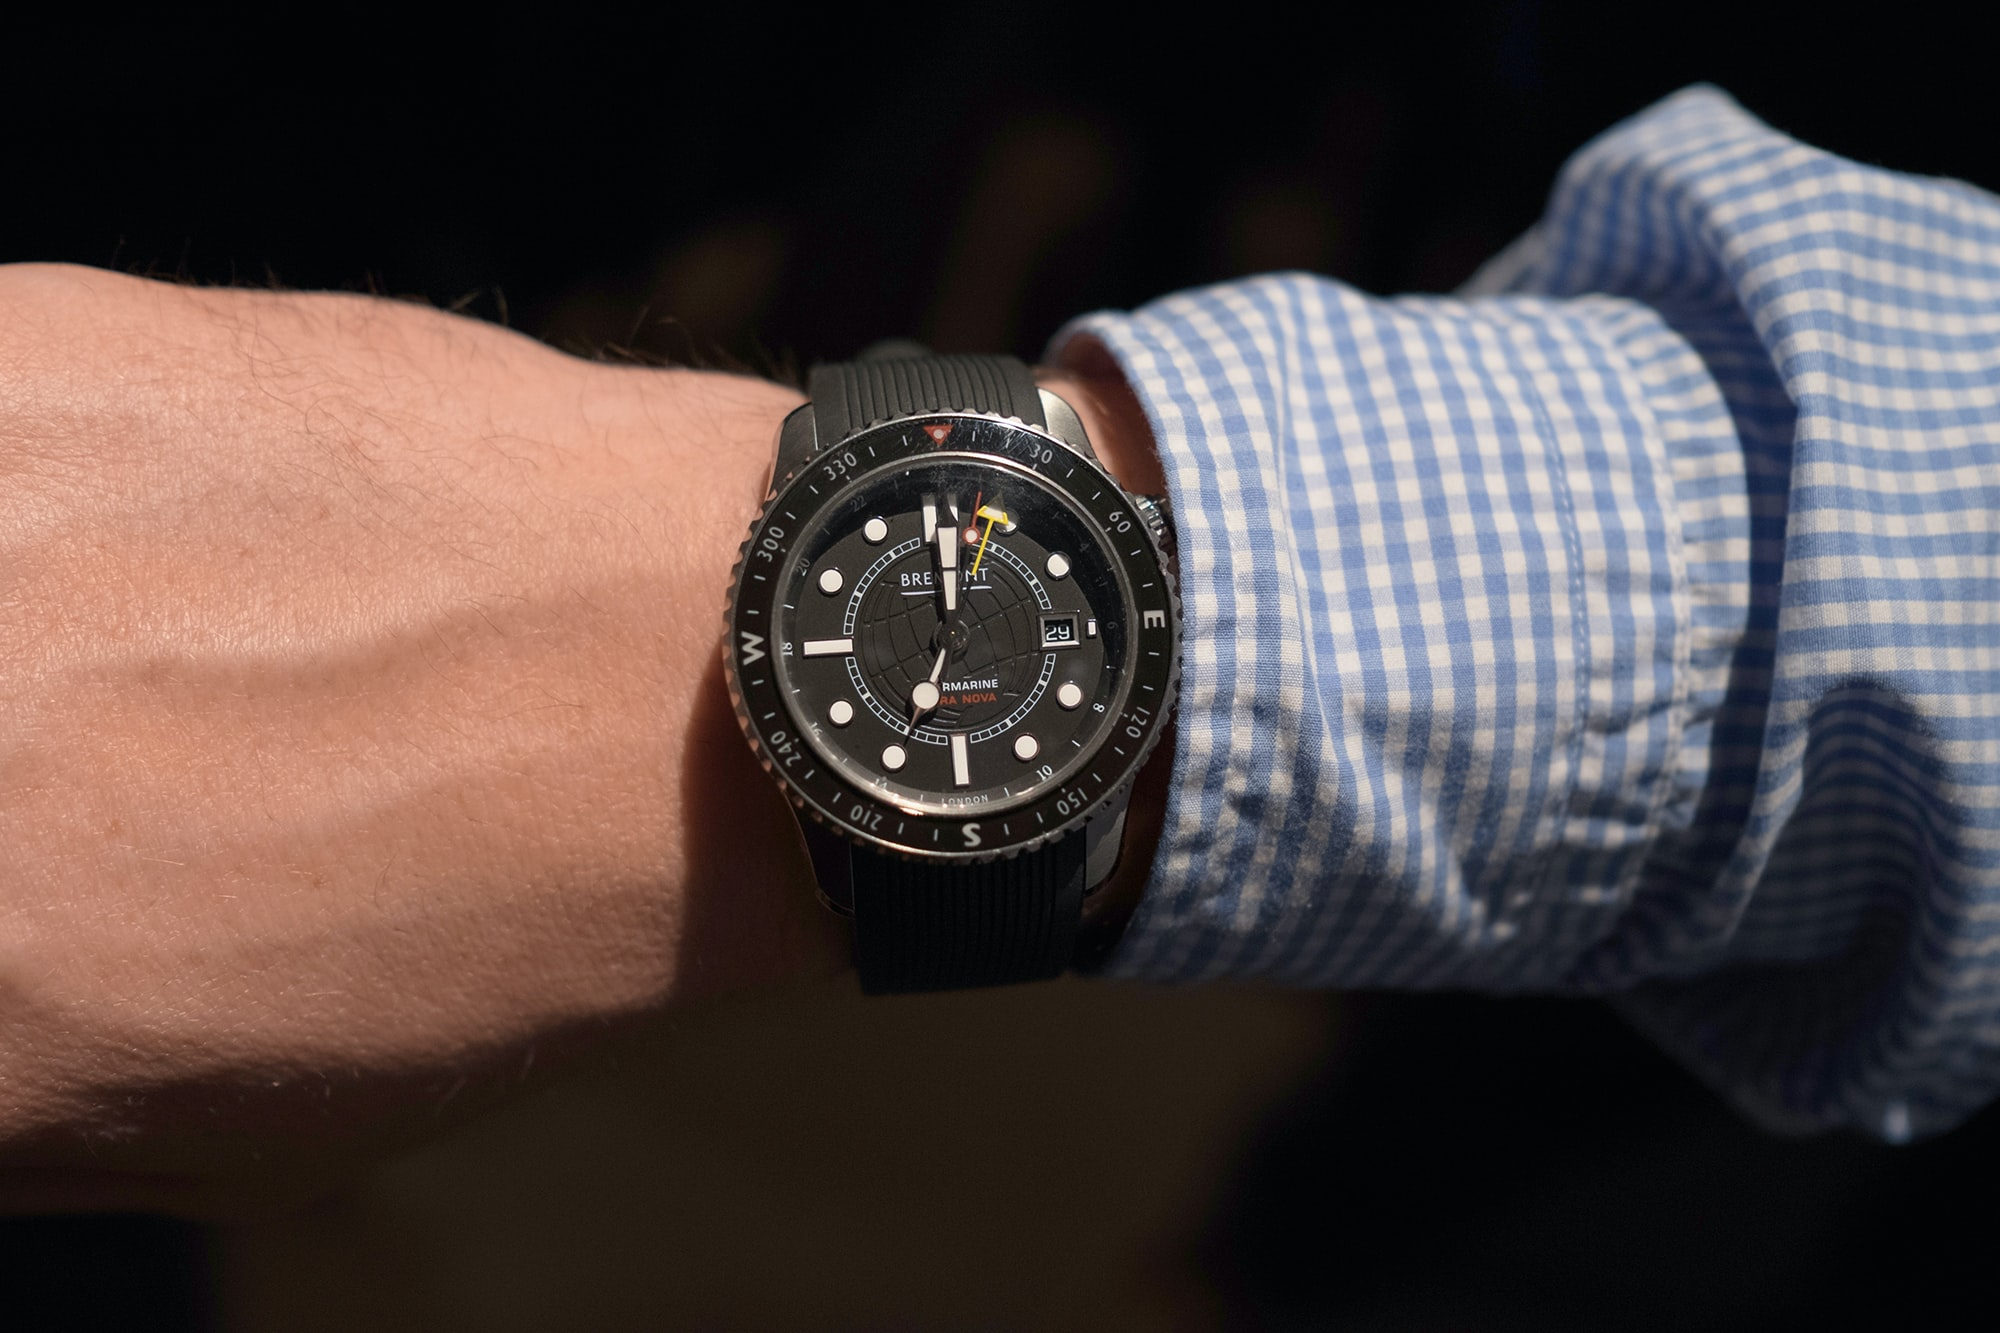 Photo Report: Watch Spotting At The HODINKEE Meet-Up In London (Plus Our Holiday 2016 Pop-Up At Harrods) Photo Report: Watch Spotting At The HODINKEE Meet-Up In London (Plus Our Holiday 2016 Pop-Up At Harrods) Hodinkee event 29 nov 2016 30